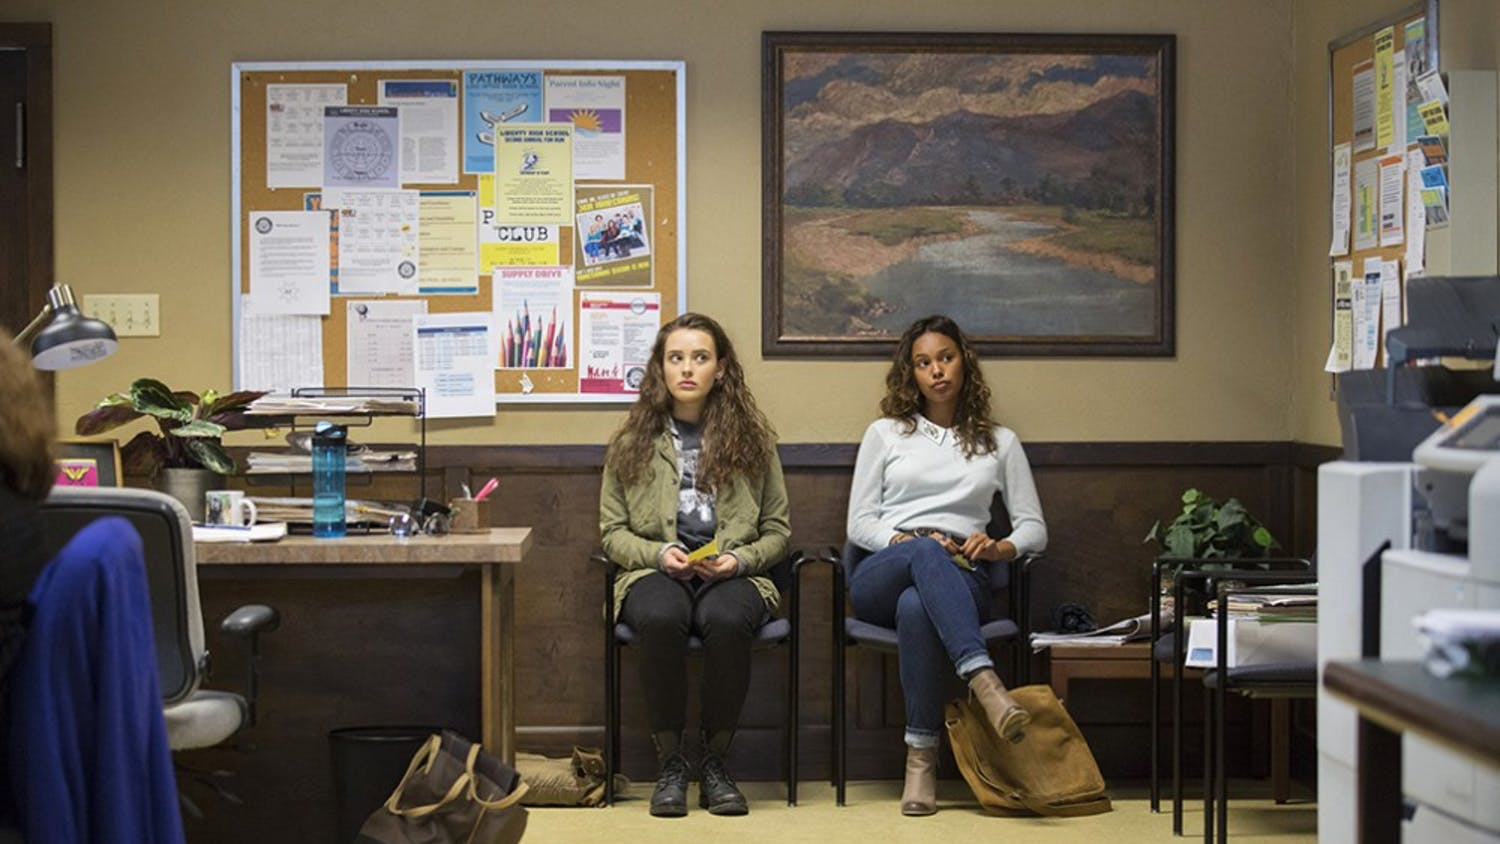 """Katherine Langford, left, and Alisha Boe play frenemies in the Netflix series """"13 Reasons Why."""" (Beth Dubber/Netflix)"""